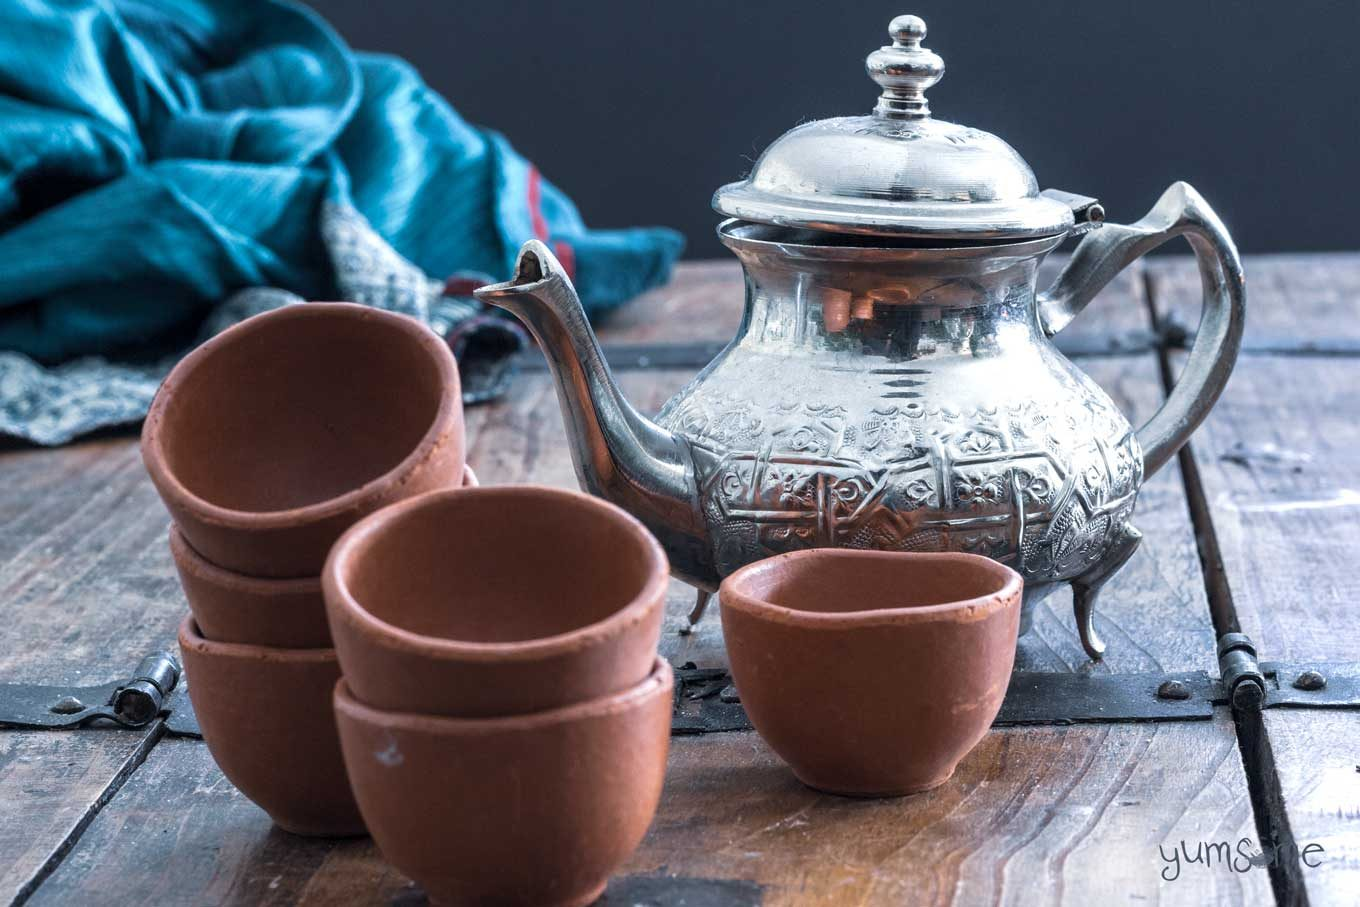 A silver tea pot and some small clay cups on a wooden table with a blue scarf in the background.